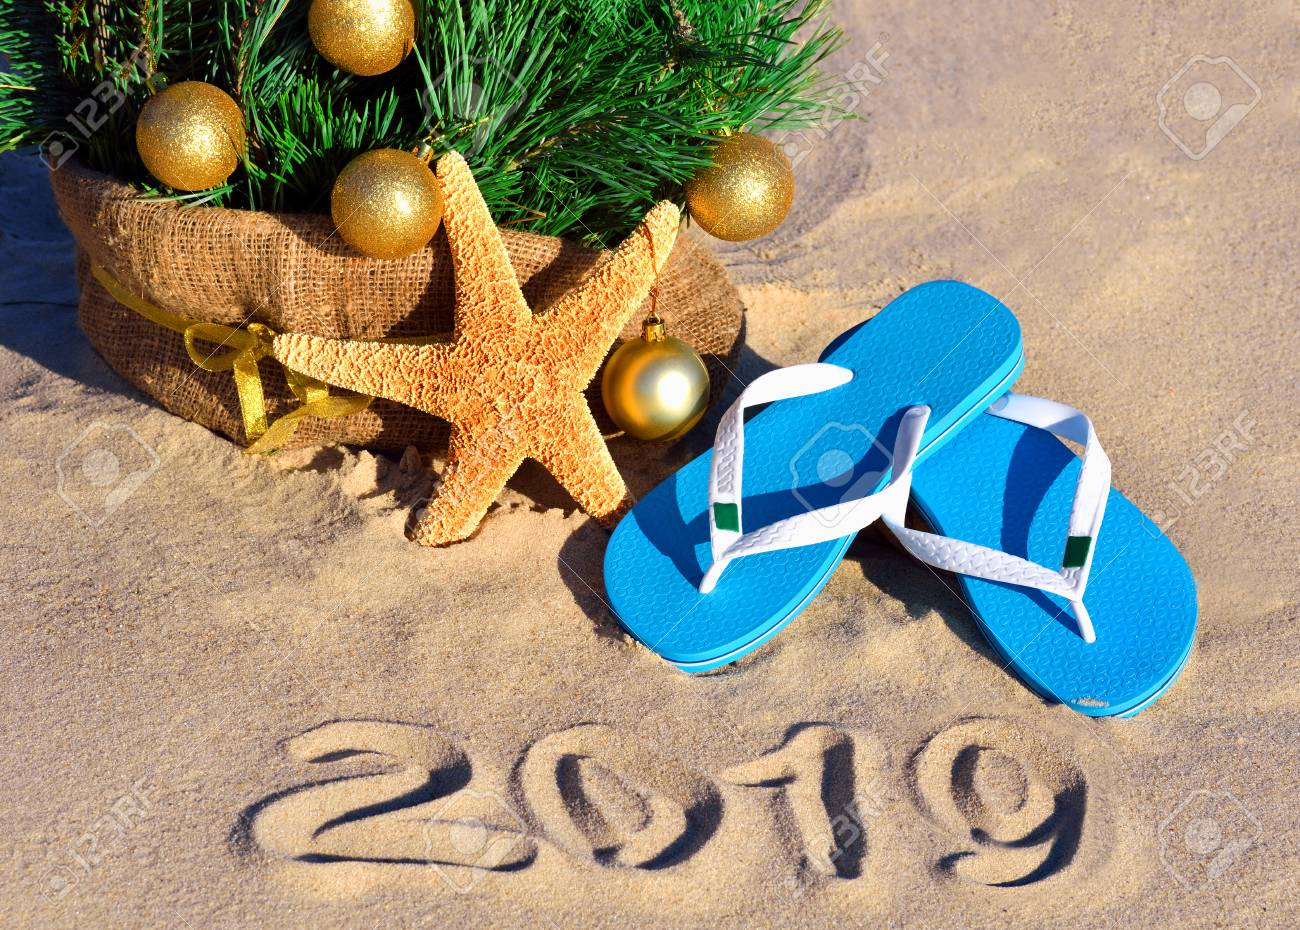 New Year 2019 on the beach. Christmas tree, starfish and slippers in sand - 121736319